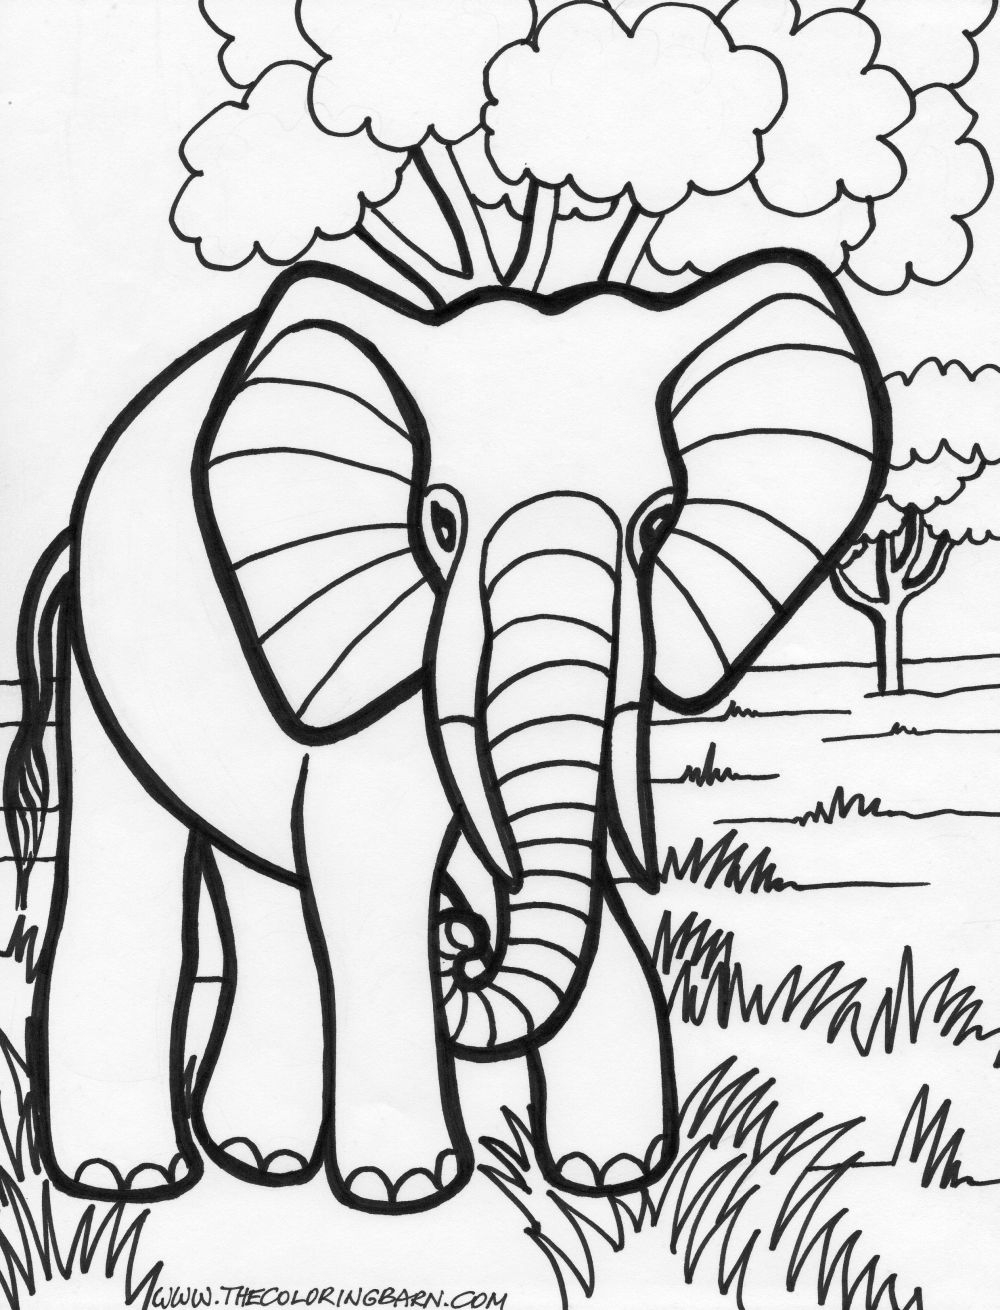 elephant coloring pages - 14 elephant coloring pages for kids